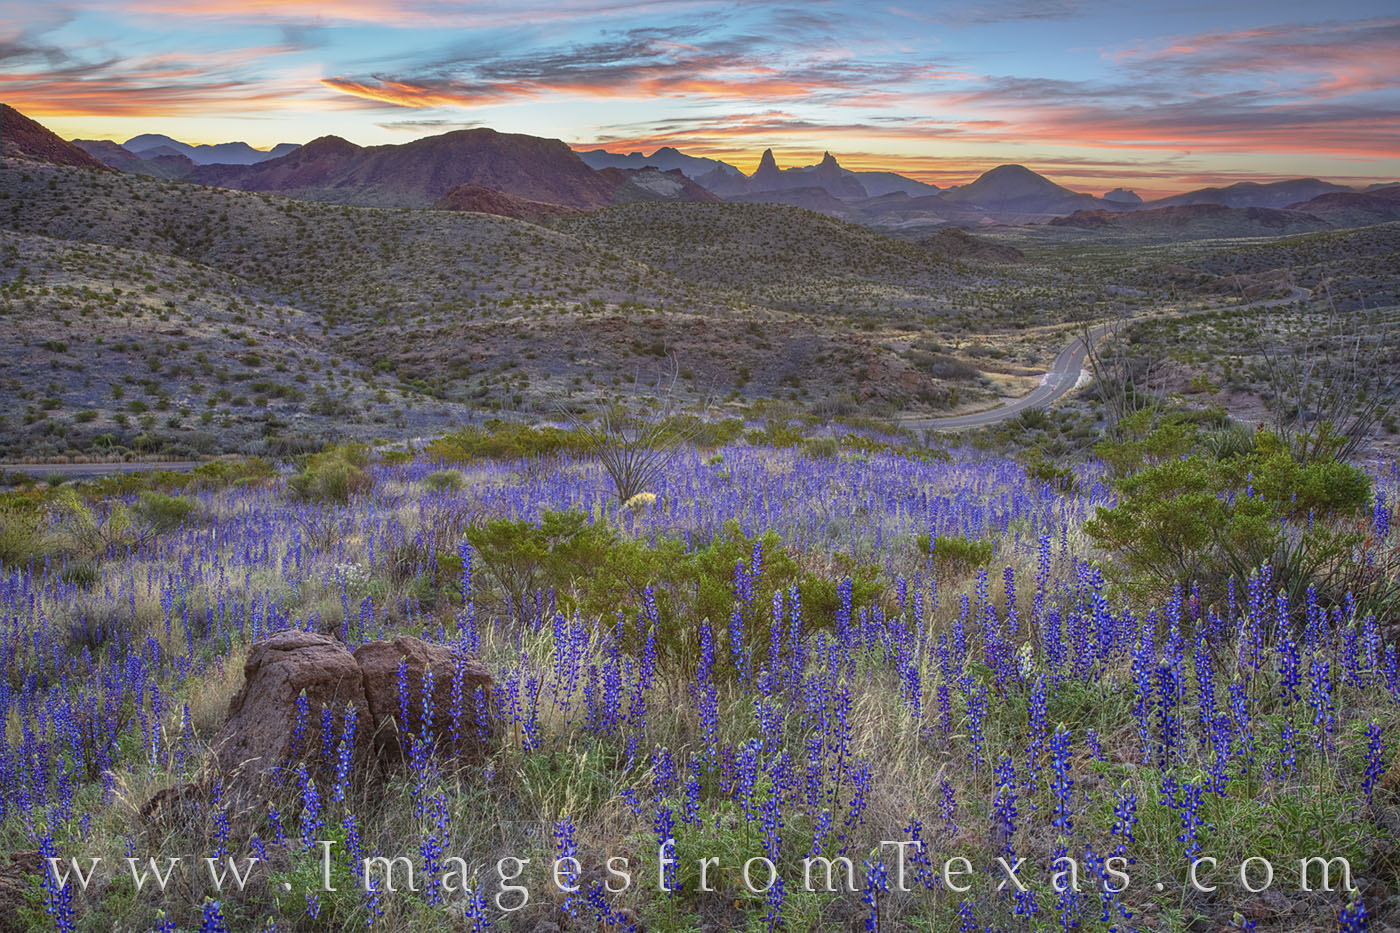 bluebonnets, mule ears, big bend, ross maxwell, chisos, foothills, blue, sunrise, scenic drives, hiking, west texas, chihuahuan desert, national park, texas parks, photo